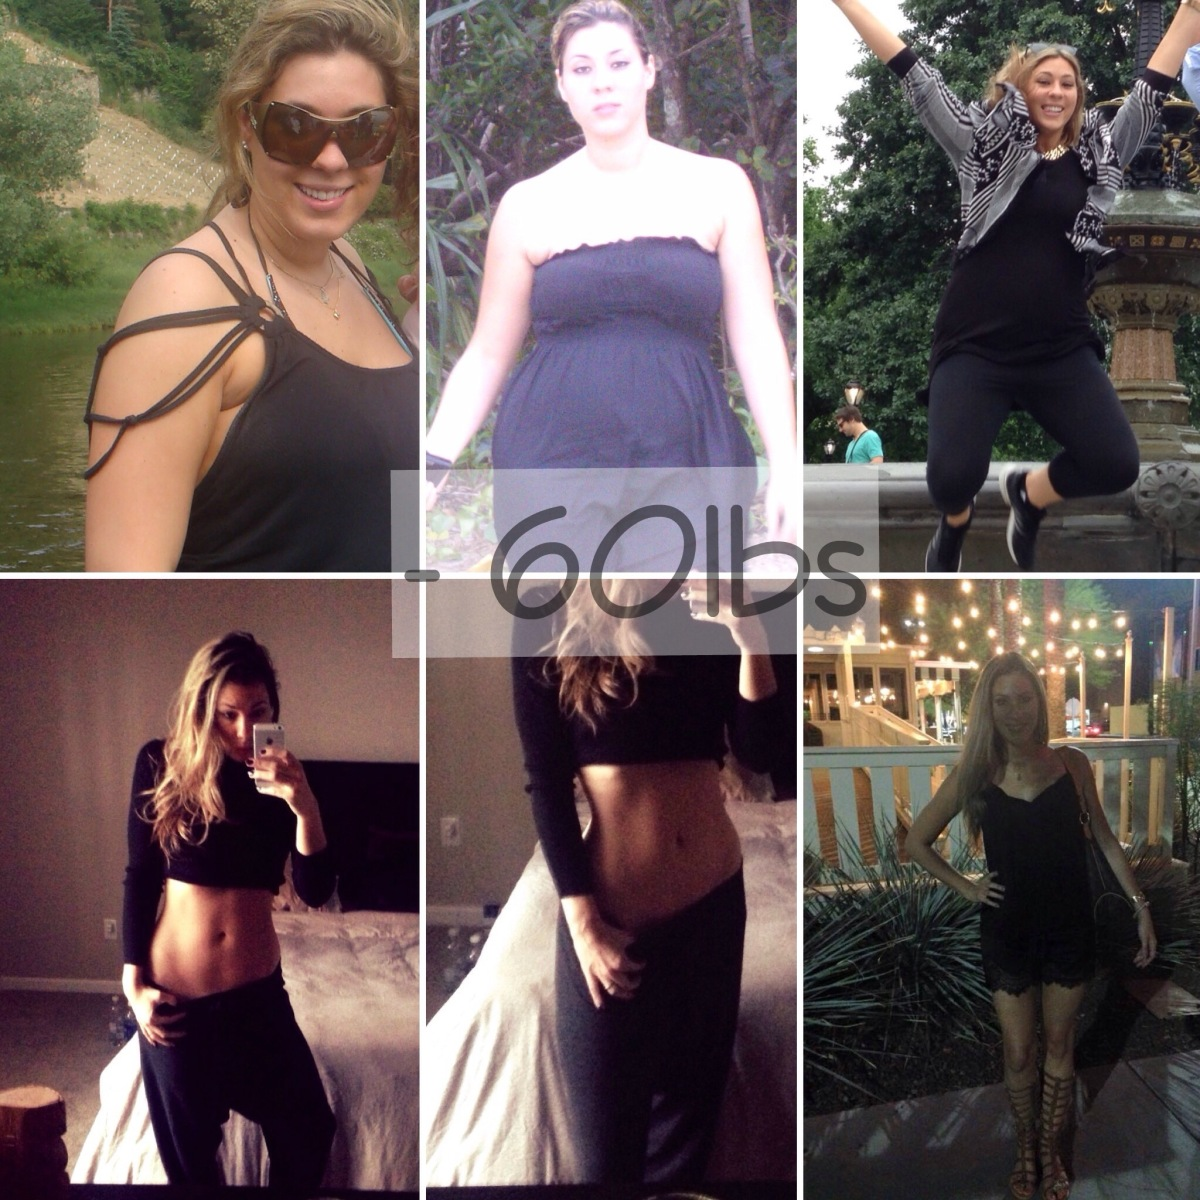 How I Lost 60lbs: Part I Of My Journey To Healthy, Strong & Confident